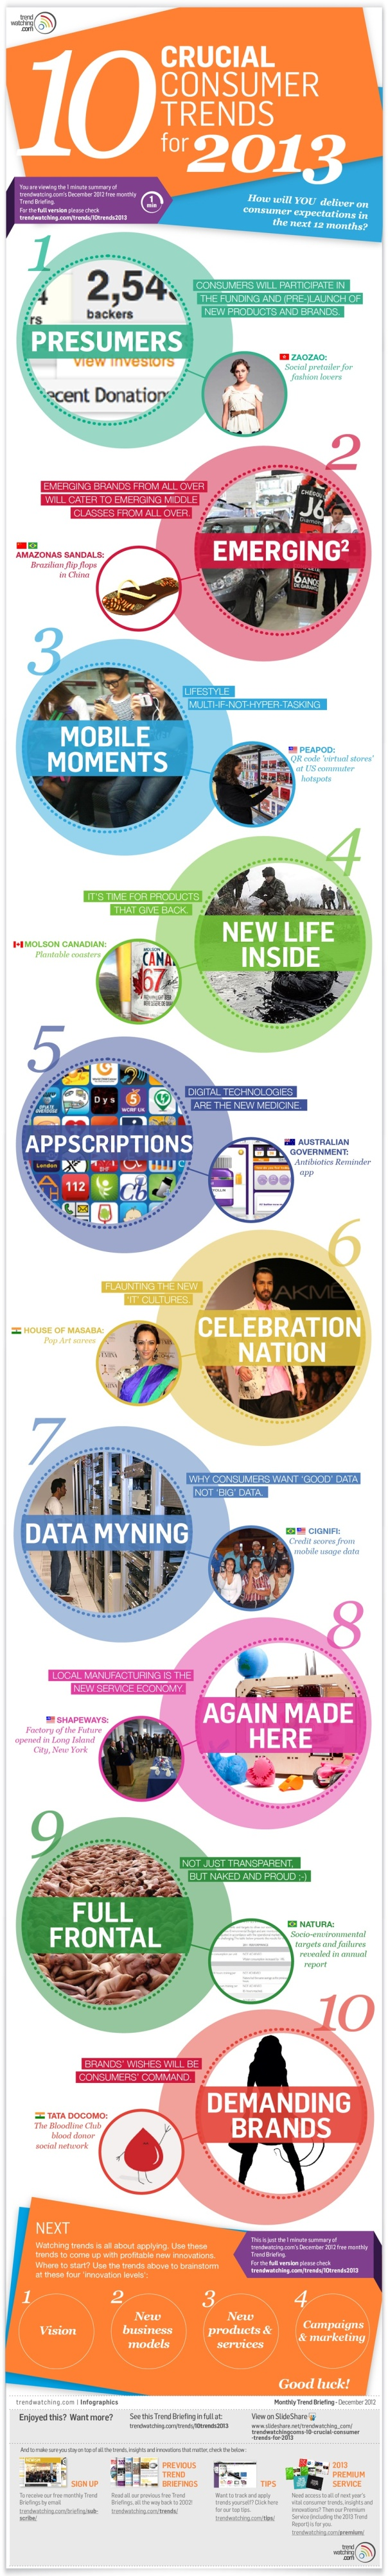 10 Consumer Trends for 2013 [Infographic]